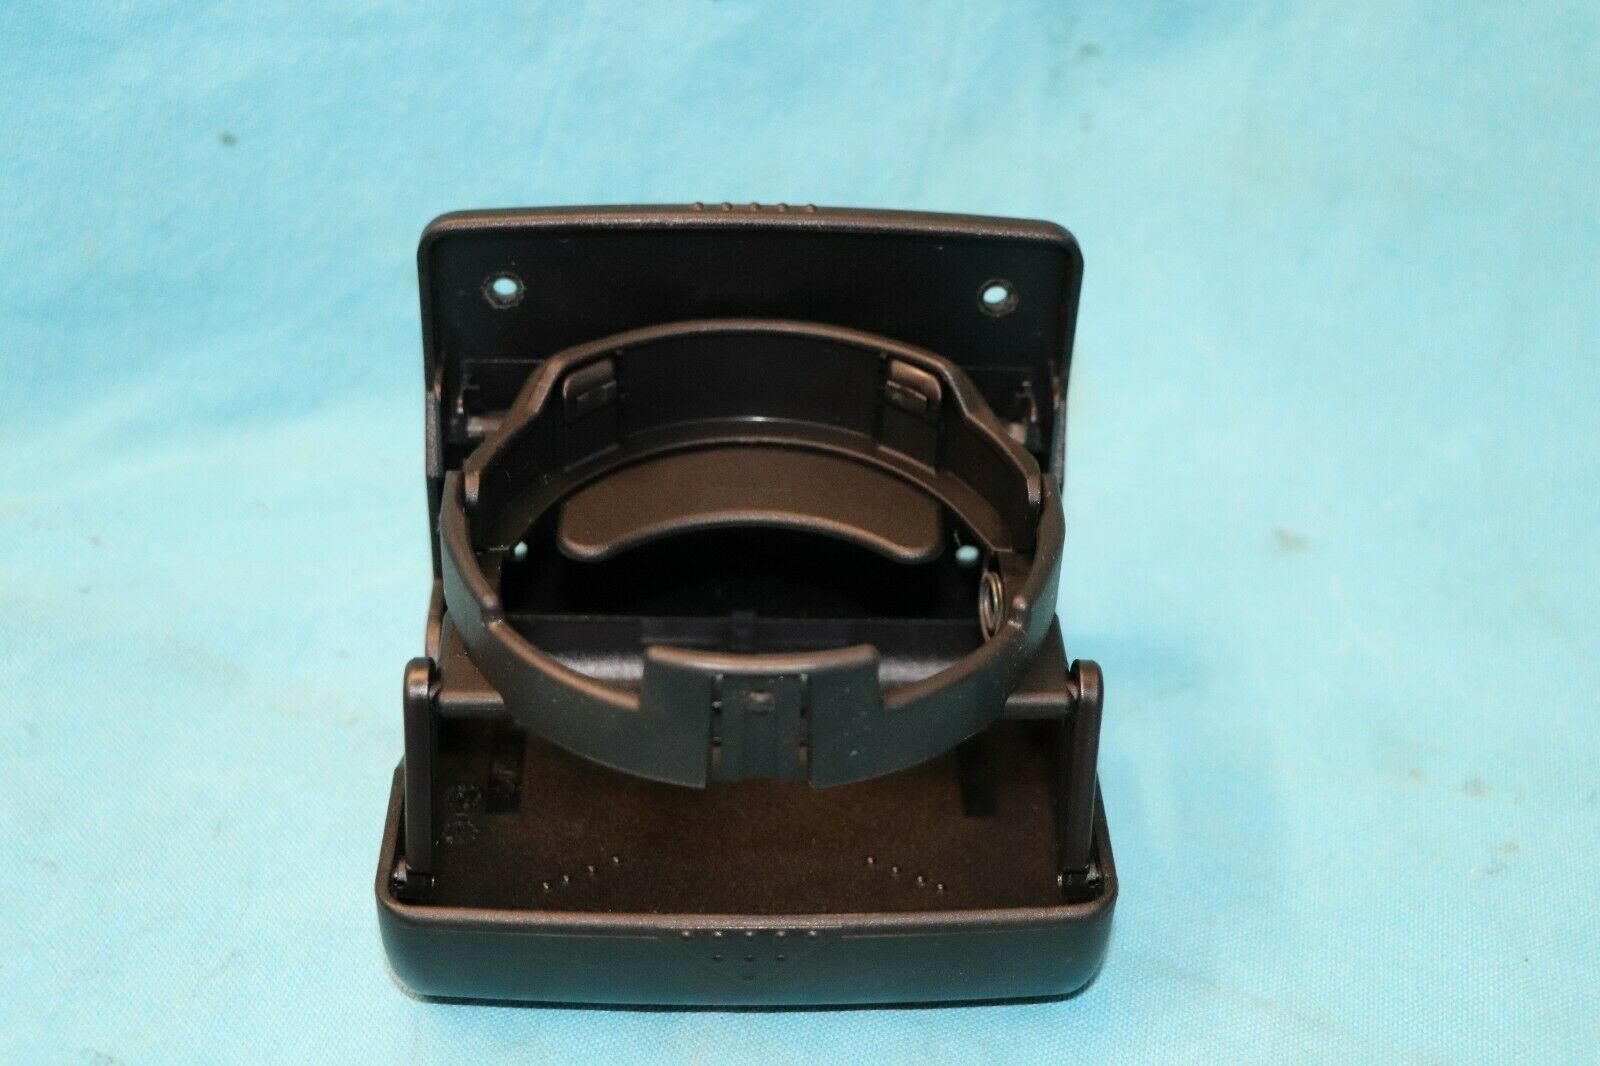 96-03 MERCEDES BENZ W210 E320 WAGON THIRD ROW REAR CUP HOLDER 2108100514 BLACK 1996 1997 1998 1999 2000 2001 2002 2003 blkcup